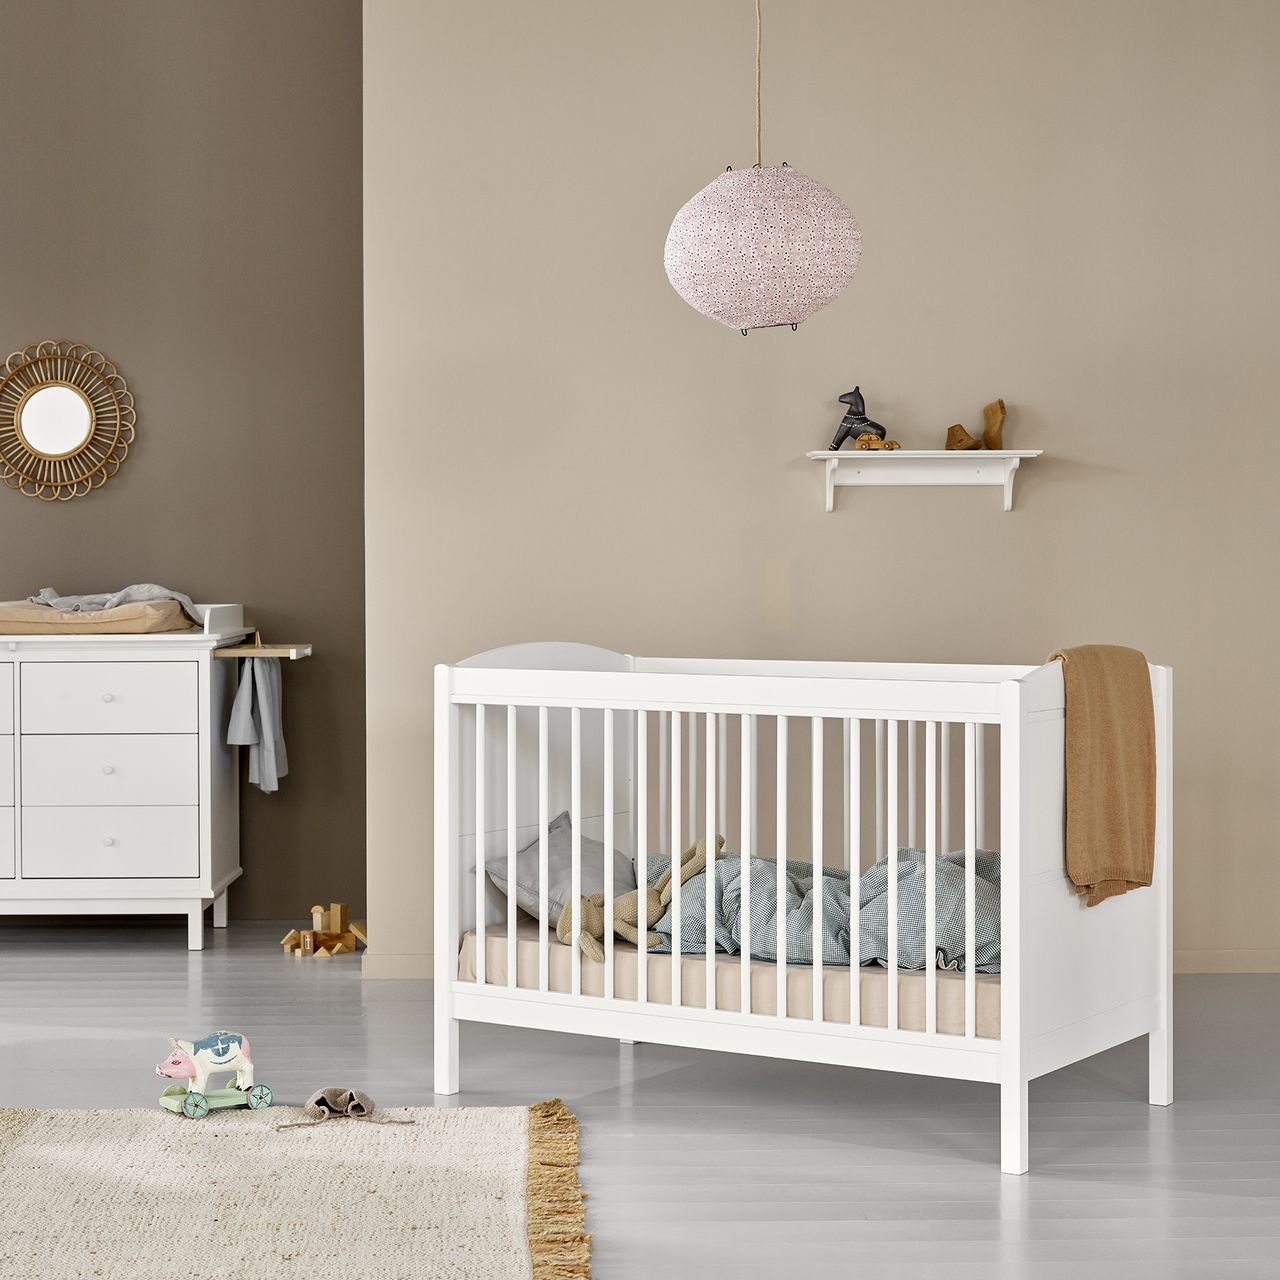 Oliver Furniture Seaside Lille+ Babybett in Berlin kaufen - Kleine Fabriek